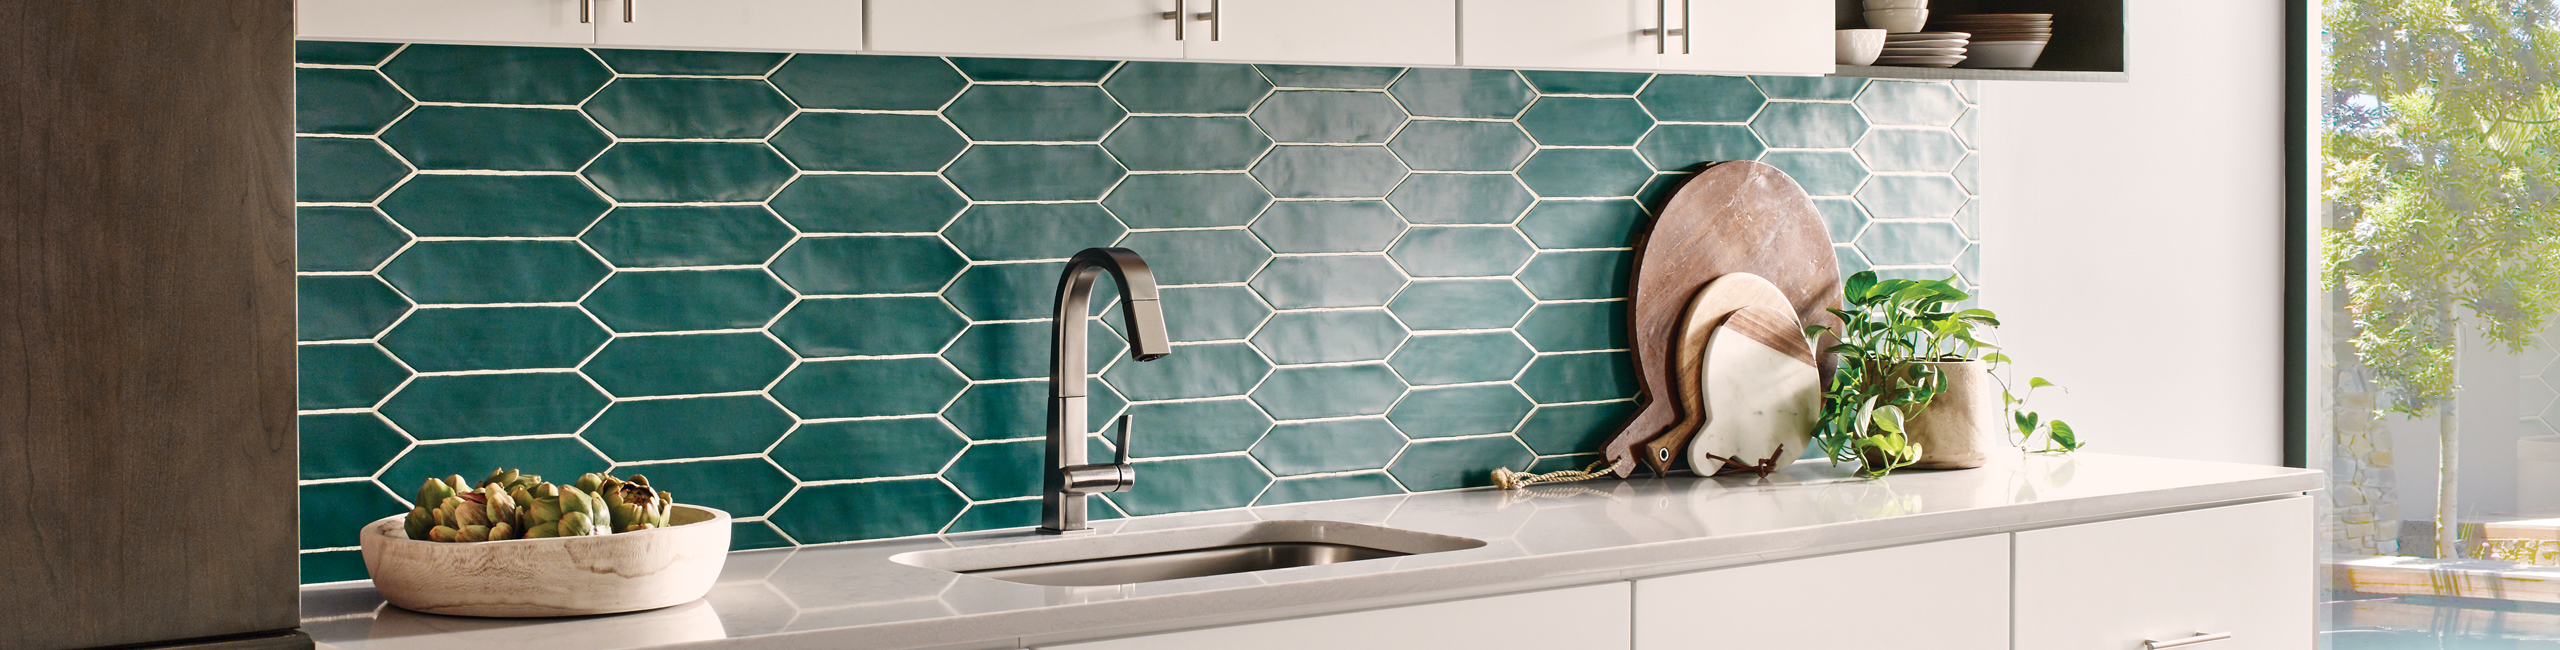 Bedrosians Reine picket style ceramic tile backsplash in Teal